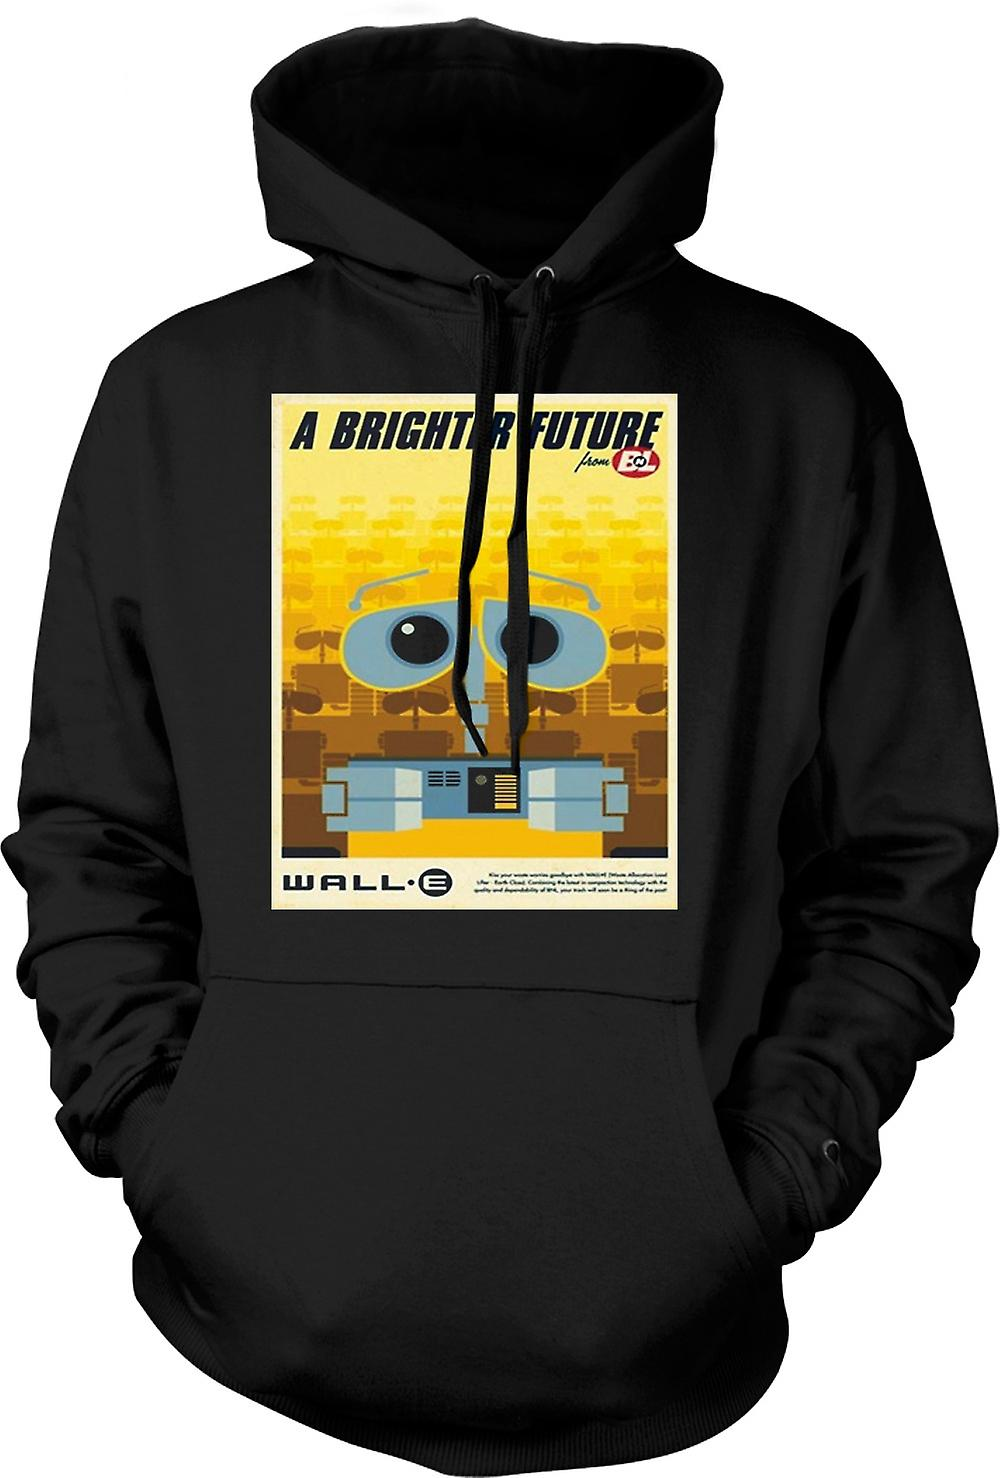 Mens Hoodie - Wall E - Brighter Future - Robot